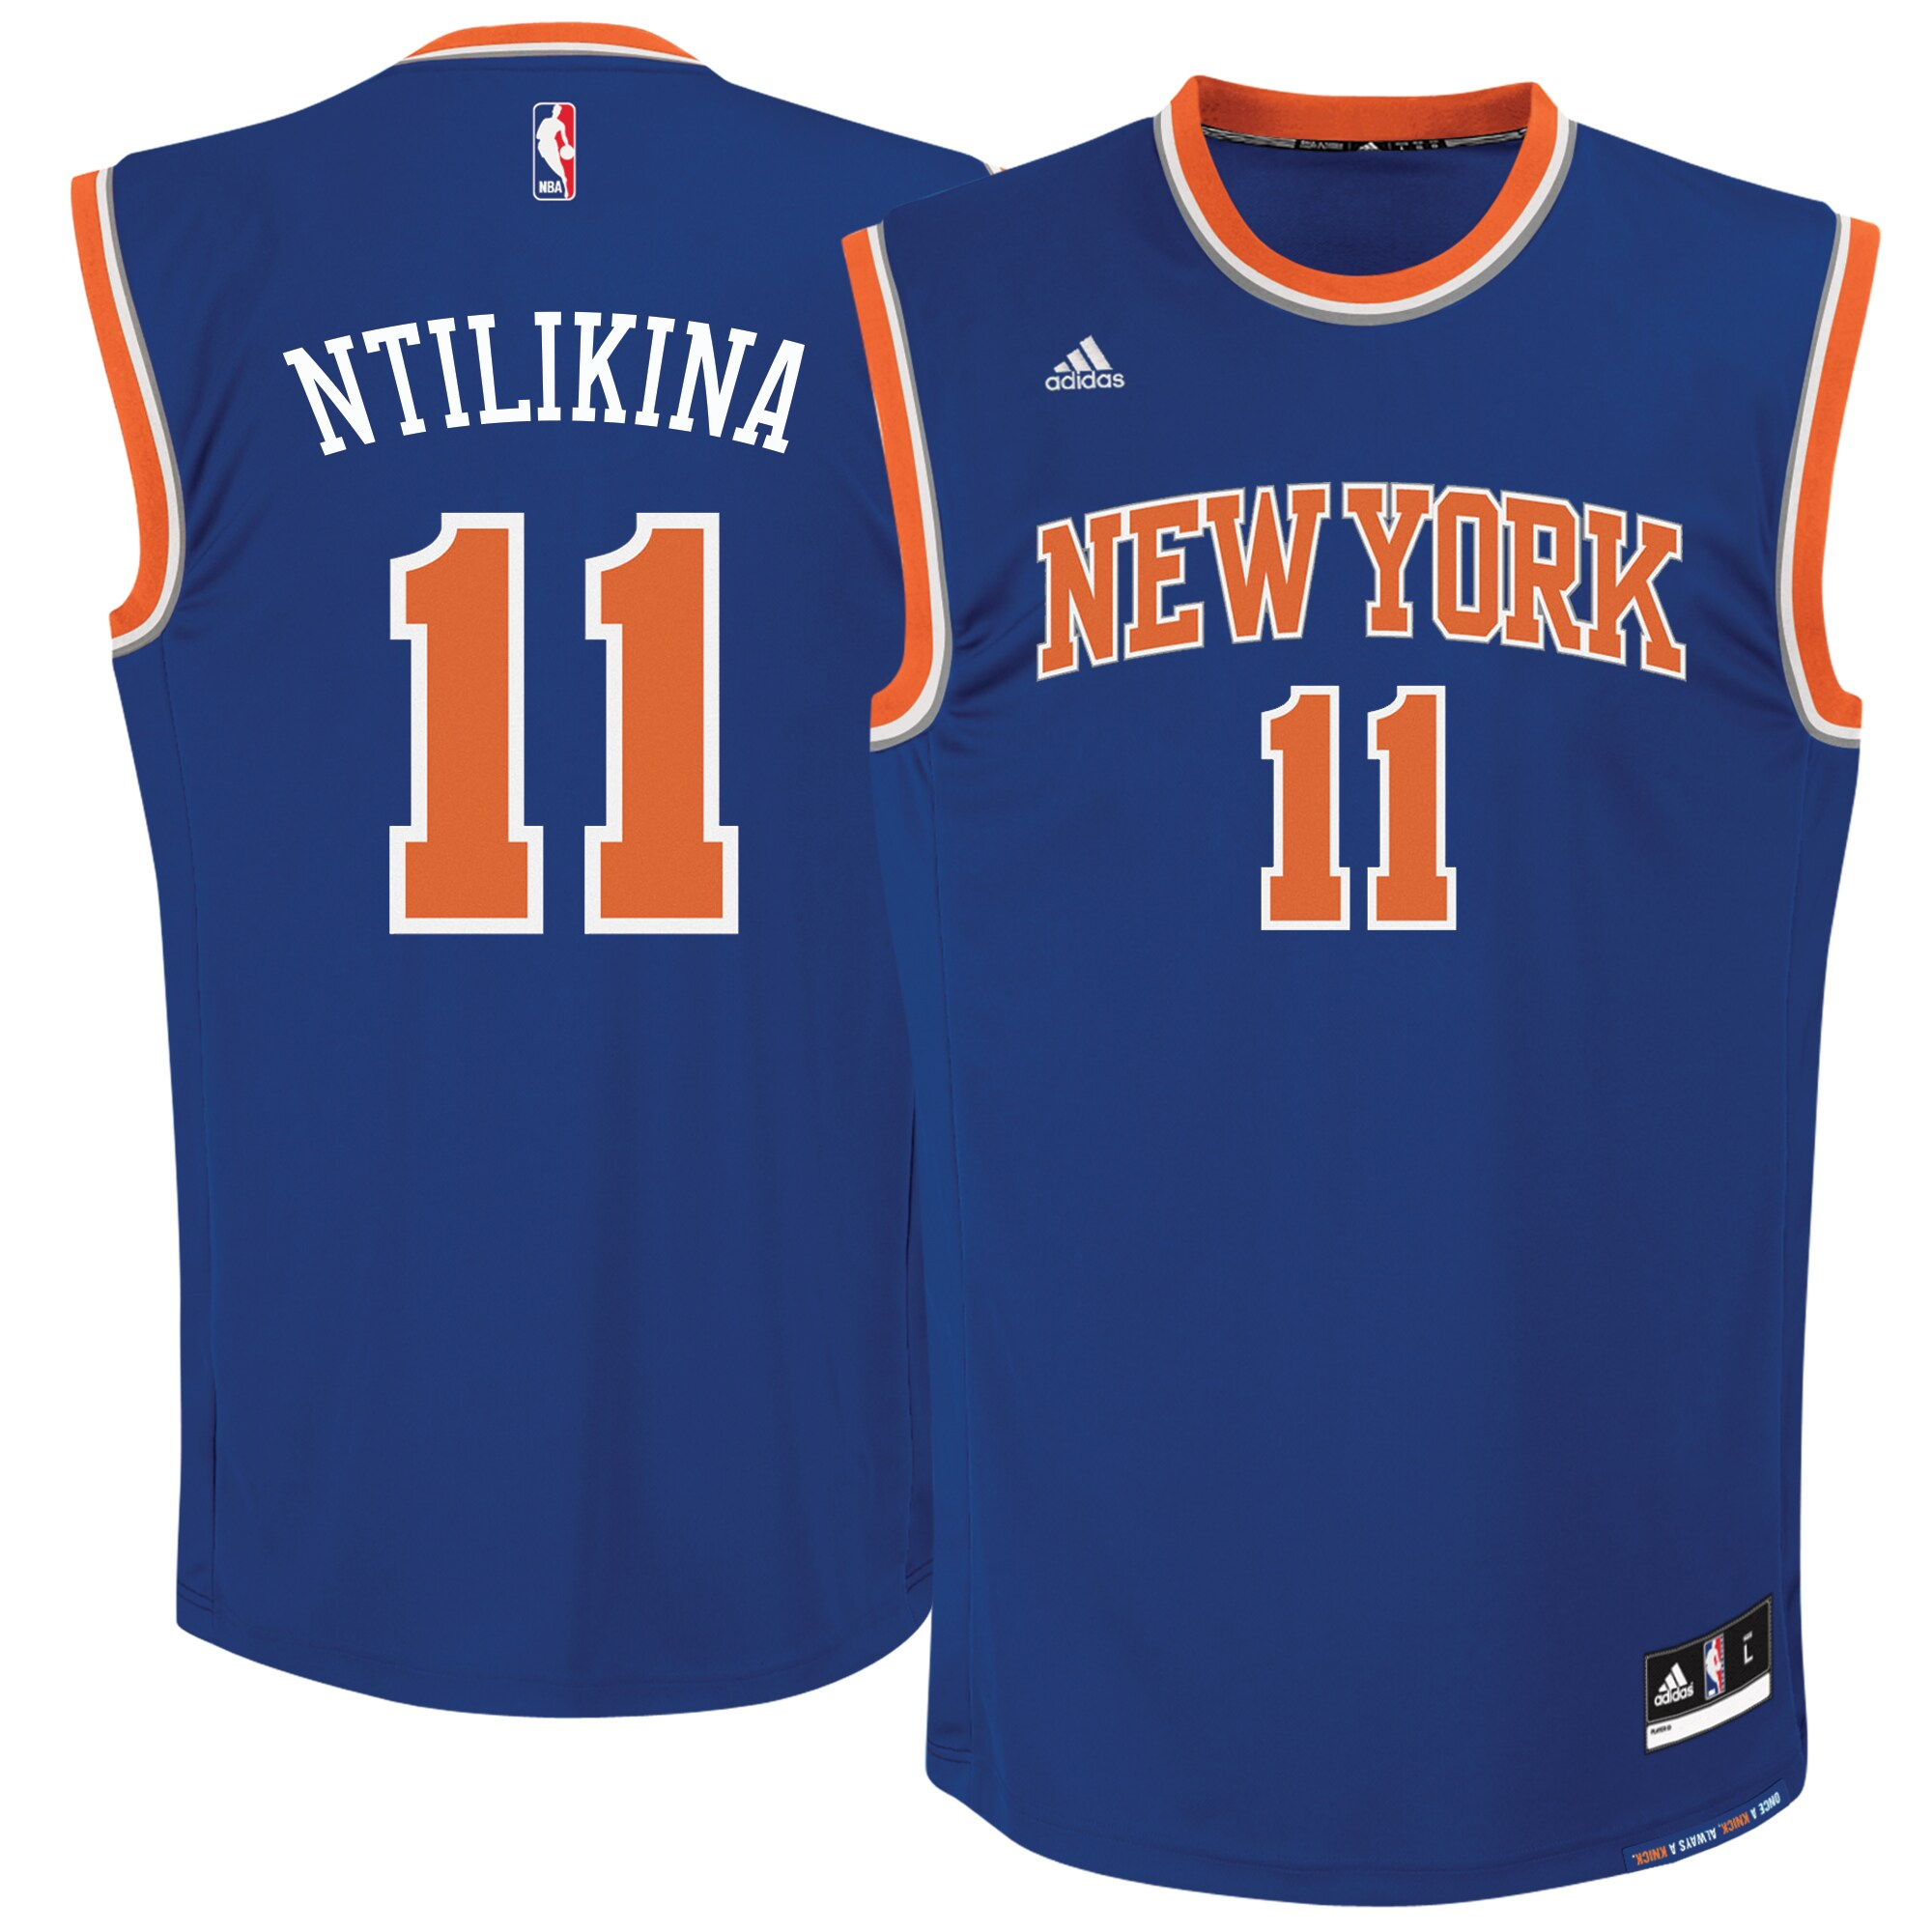 Frank Ntilikina New York Knicks adidas 2017 NBA Draft #1 Pick Replica Jersey - Royal